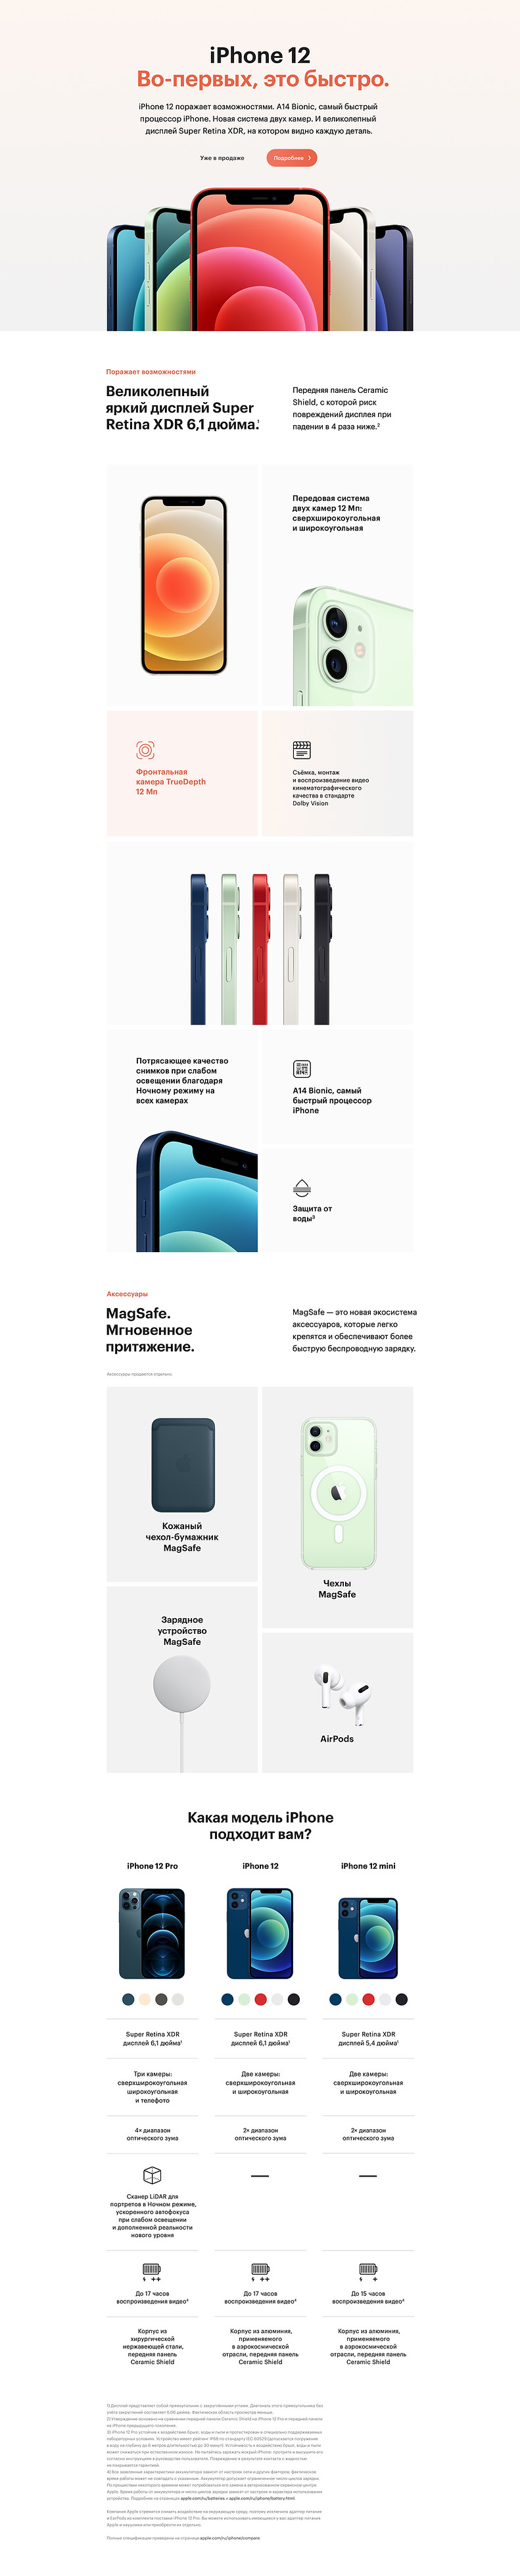 УЖЕ_iphone12_q121_landing_desktop_r10_2x